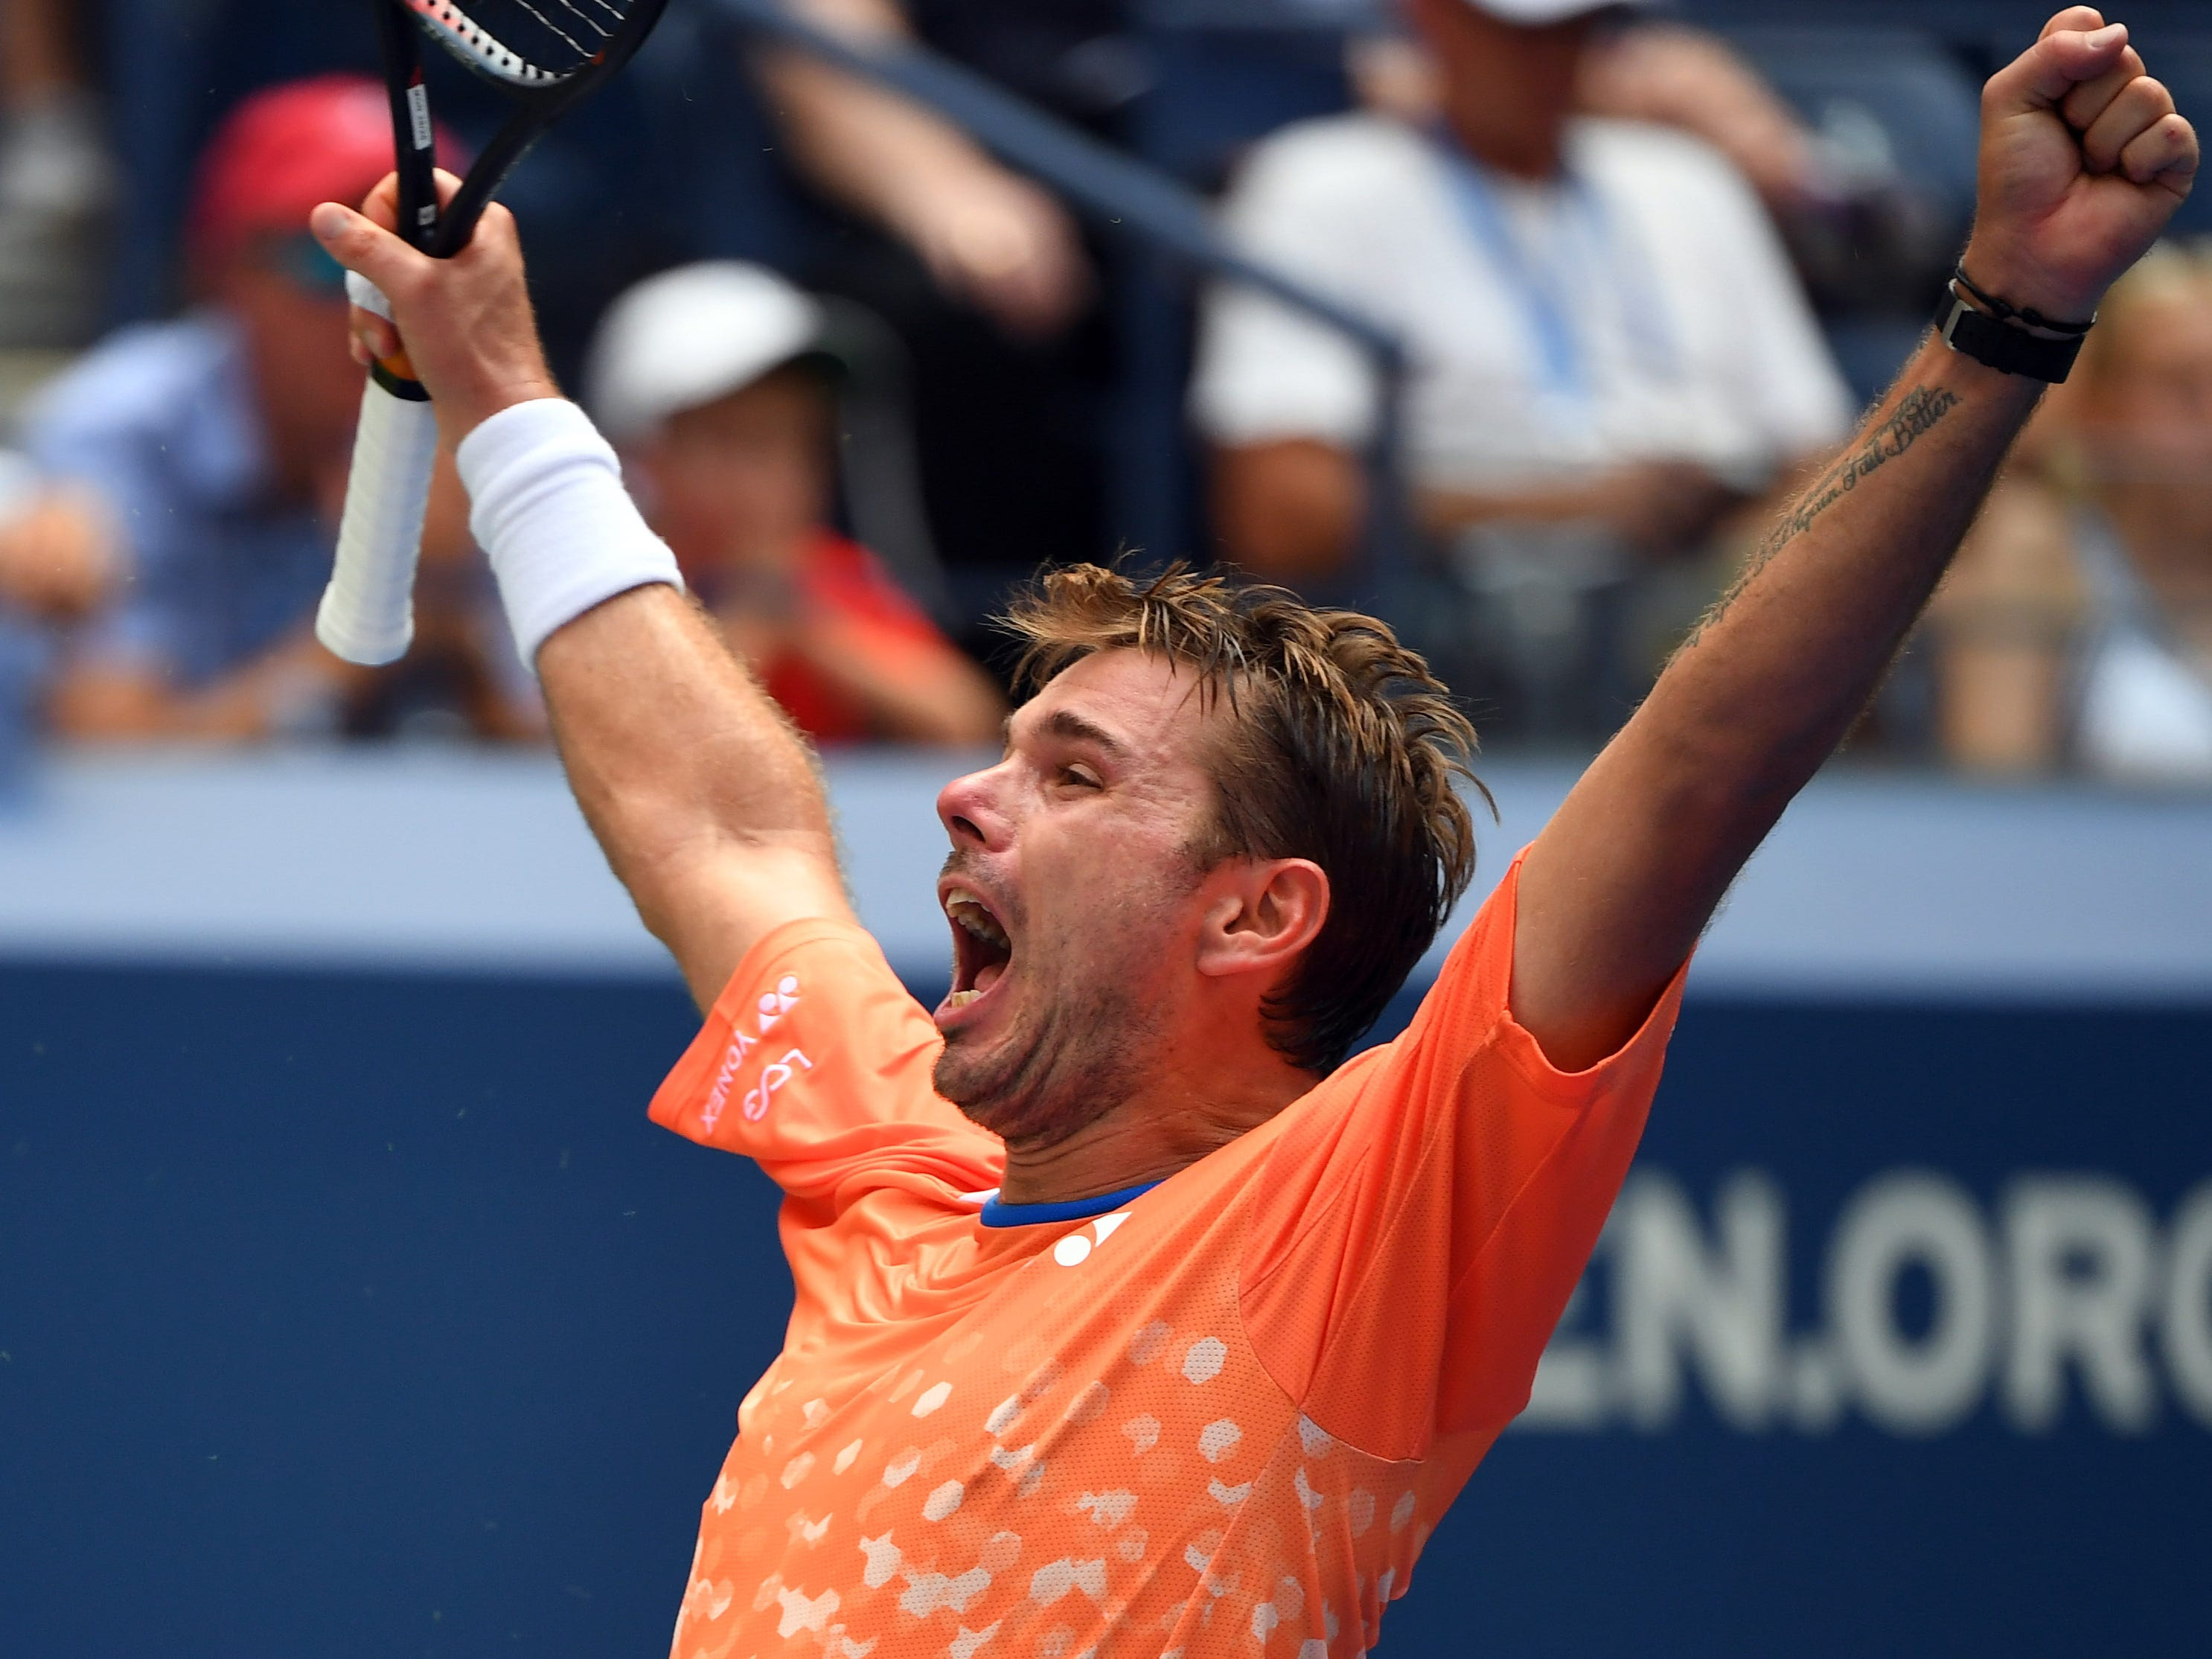 Stan Wawrinka of Switzerland celebrates big after handling his tricky first-round test against Grigor Dimitrov of Bulgaria. Wawrinka, the 2016 US Open champ, won 6-3, 6-2, 7-5.